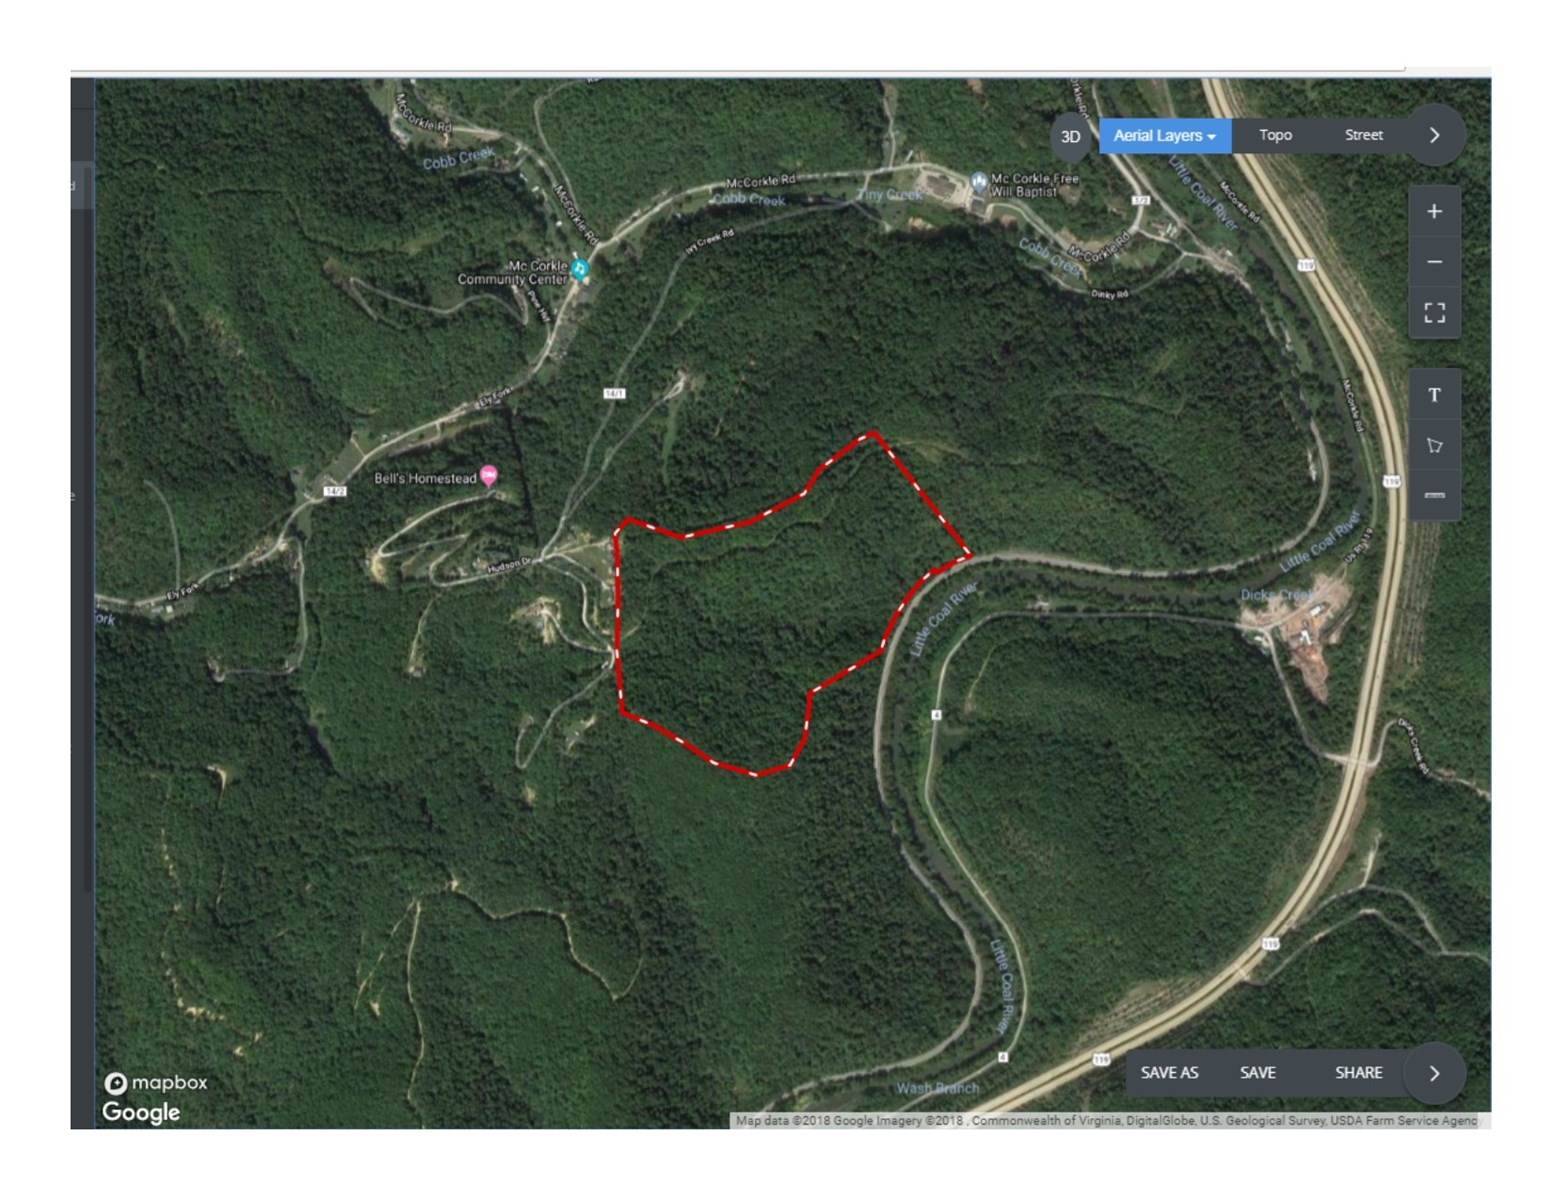 Real Estate Auction - Recreational | Investment | 86 +/- acres